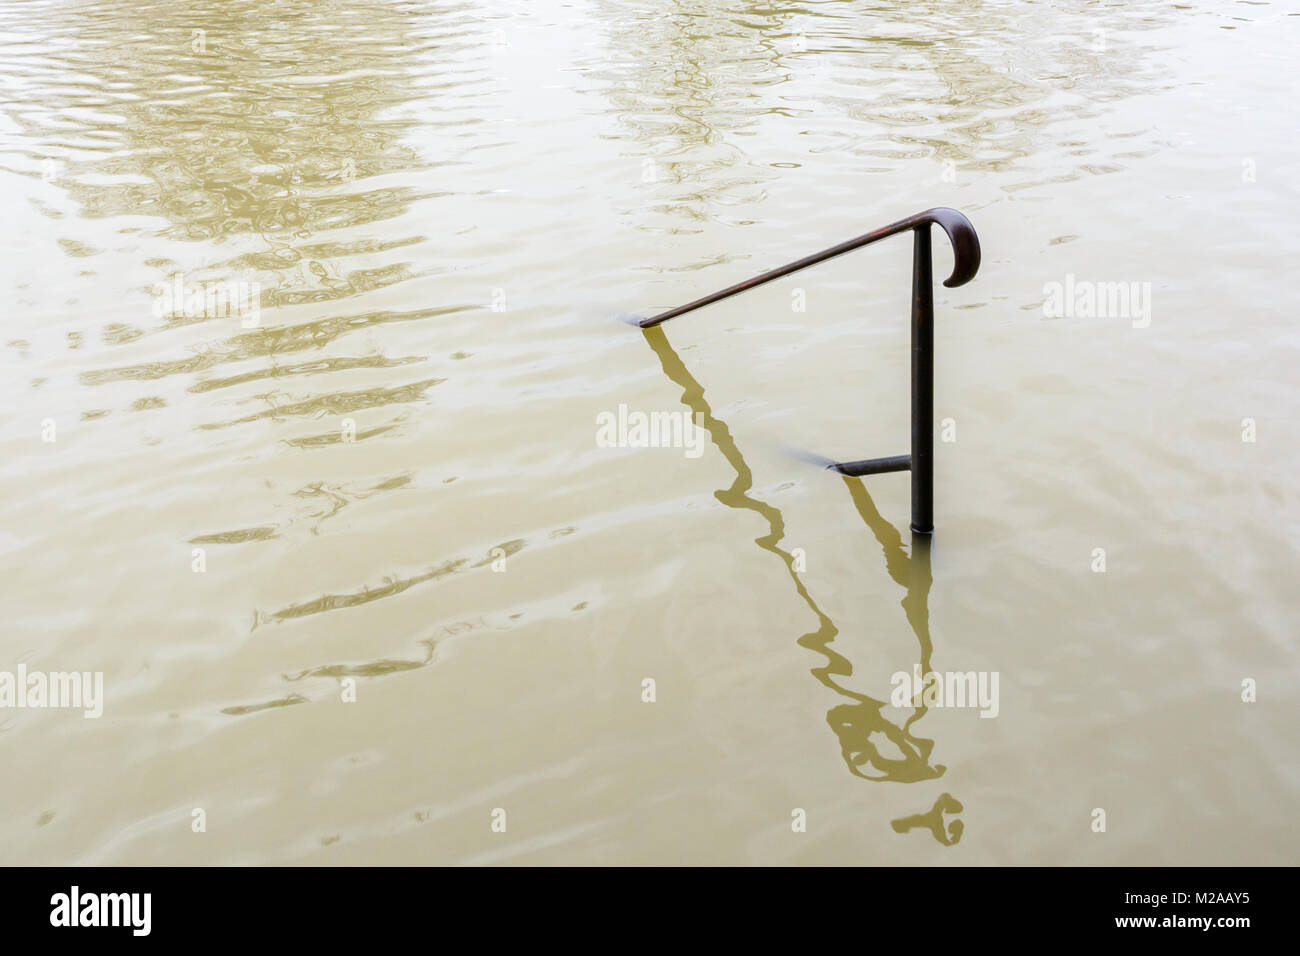 The upper part of a wrought iron handrail is sticking out of the muddy floodwaters of the swollen Seine during a - Stock Image